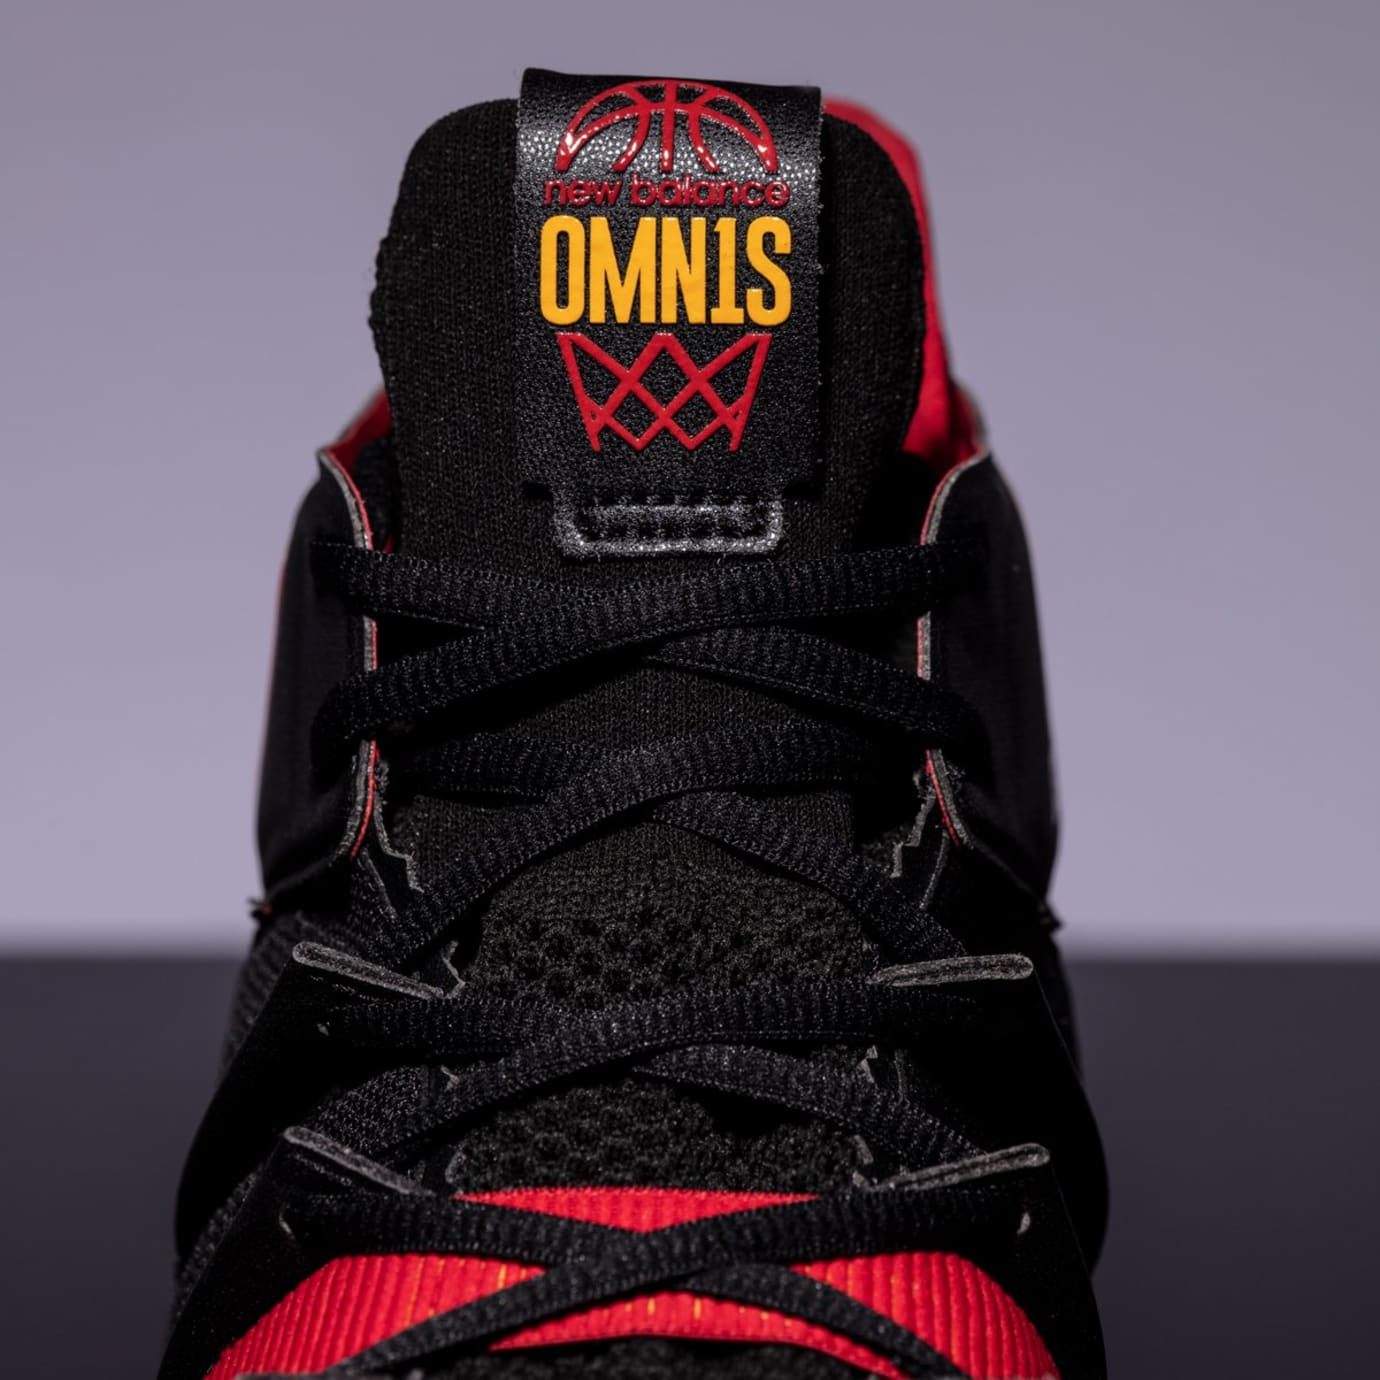 New Balance OMN1S Kawhi Leonard All-Star Game PE 'Black/Red' 1